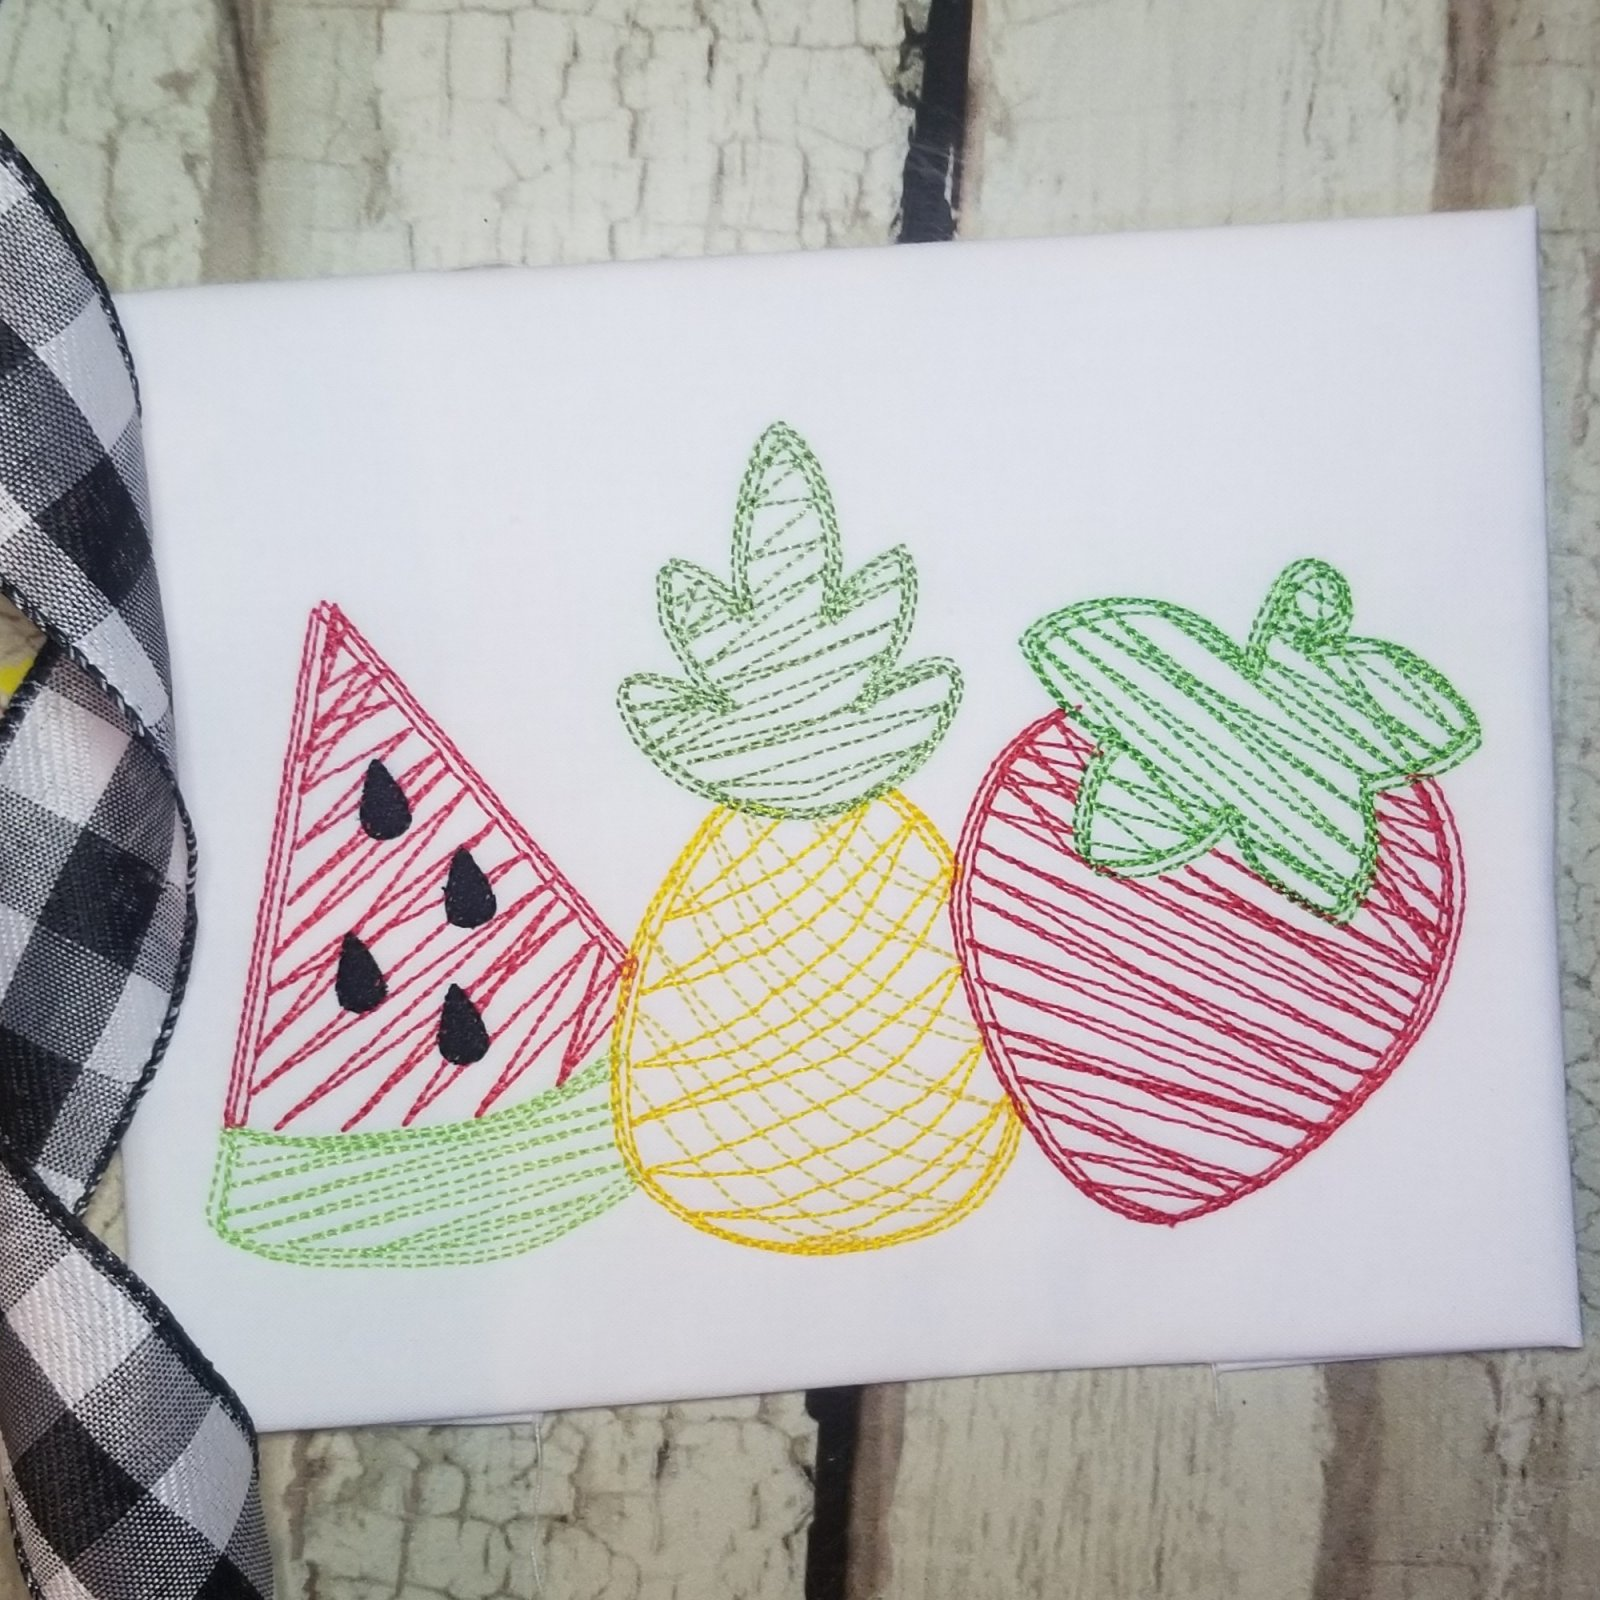 Watermelon Pineapple Strawberry Embroidery Design